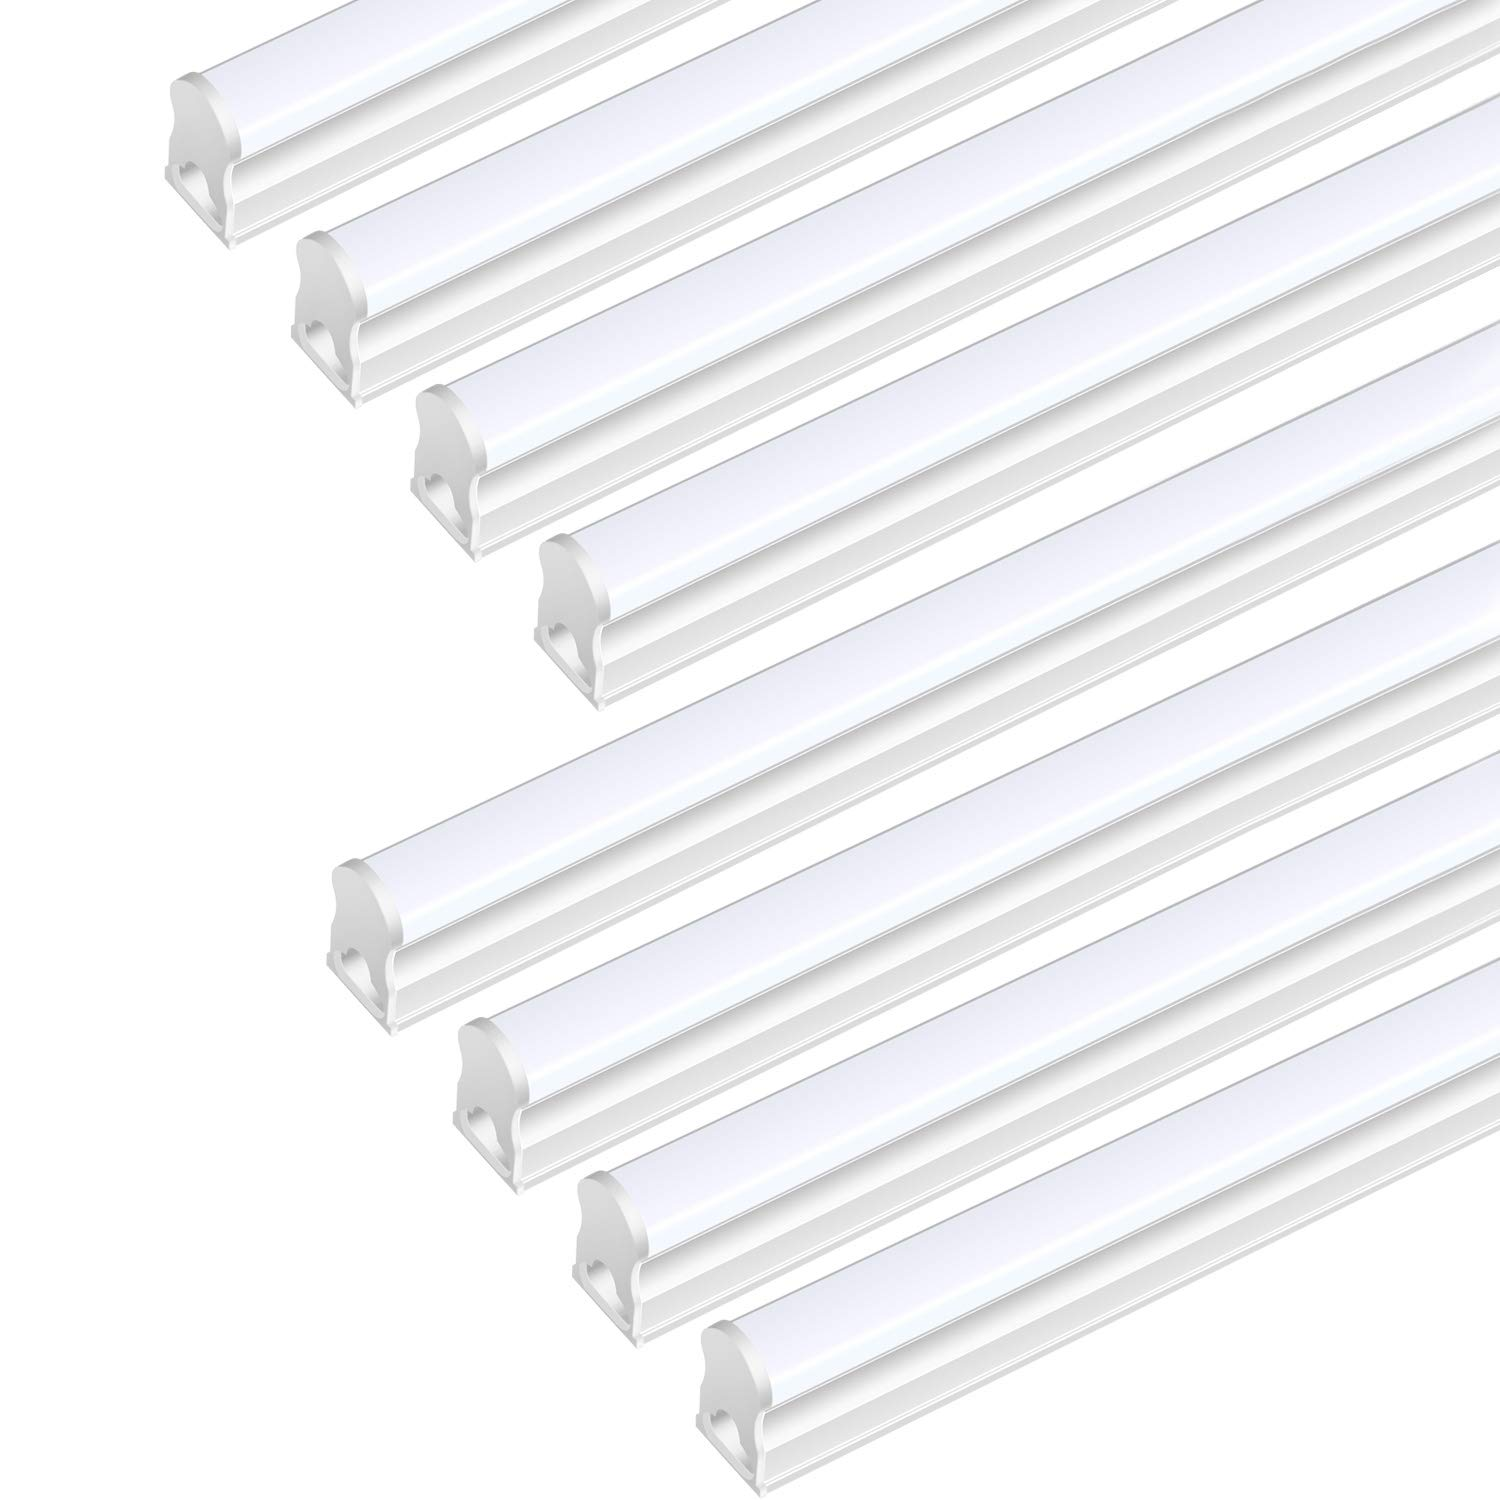 (Pack Of 8) DIKAIDA T5 Led Integrated Single Fixture, 4FT, 2000lm, 6500K(Super Bright White), 20W, Led Shop Lights with built-in On/Off Switch for Garage, Storage Area, Basement, Under Cabinet, Office